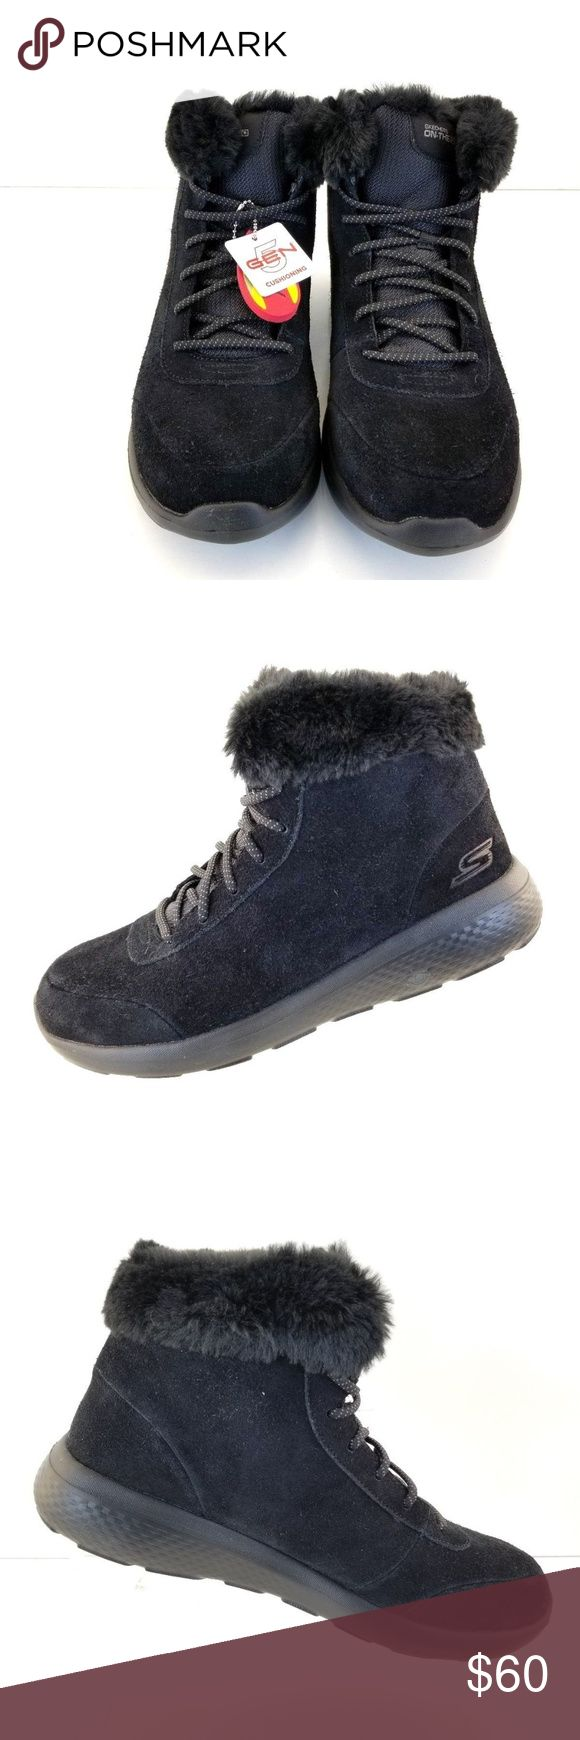 Skechers On The Go City 2 - 14627 Black Skechers On The Go City 2 - 14627 Black Bbk Womens Winter Boot Size 10M  store return Skechers Shoes Ankle Boots & Booties